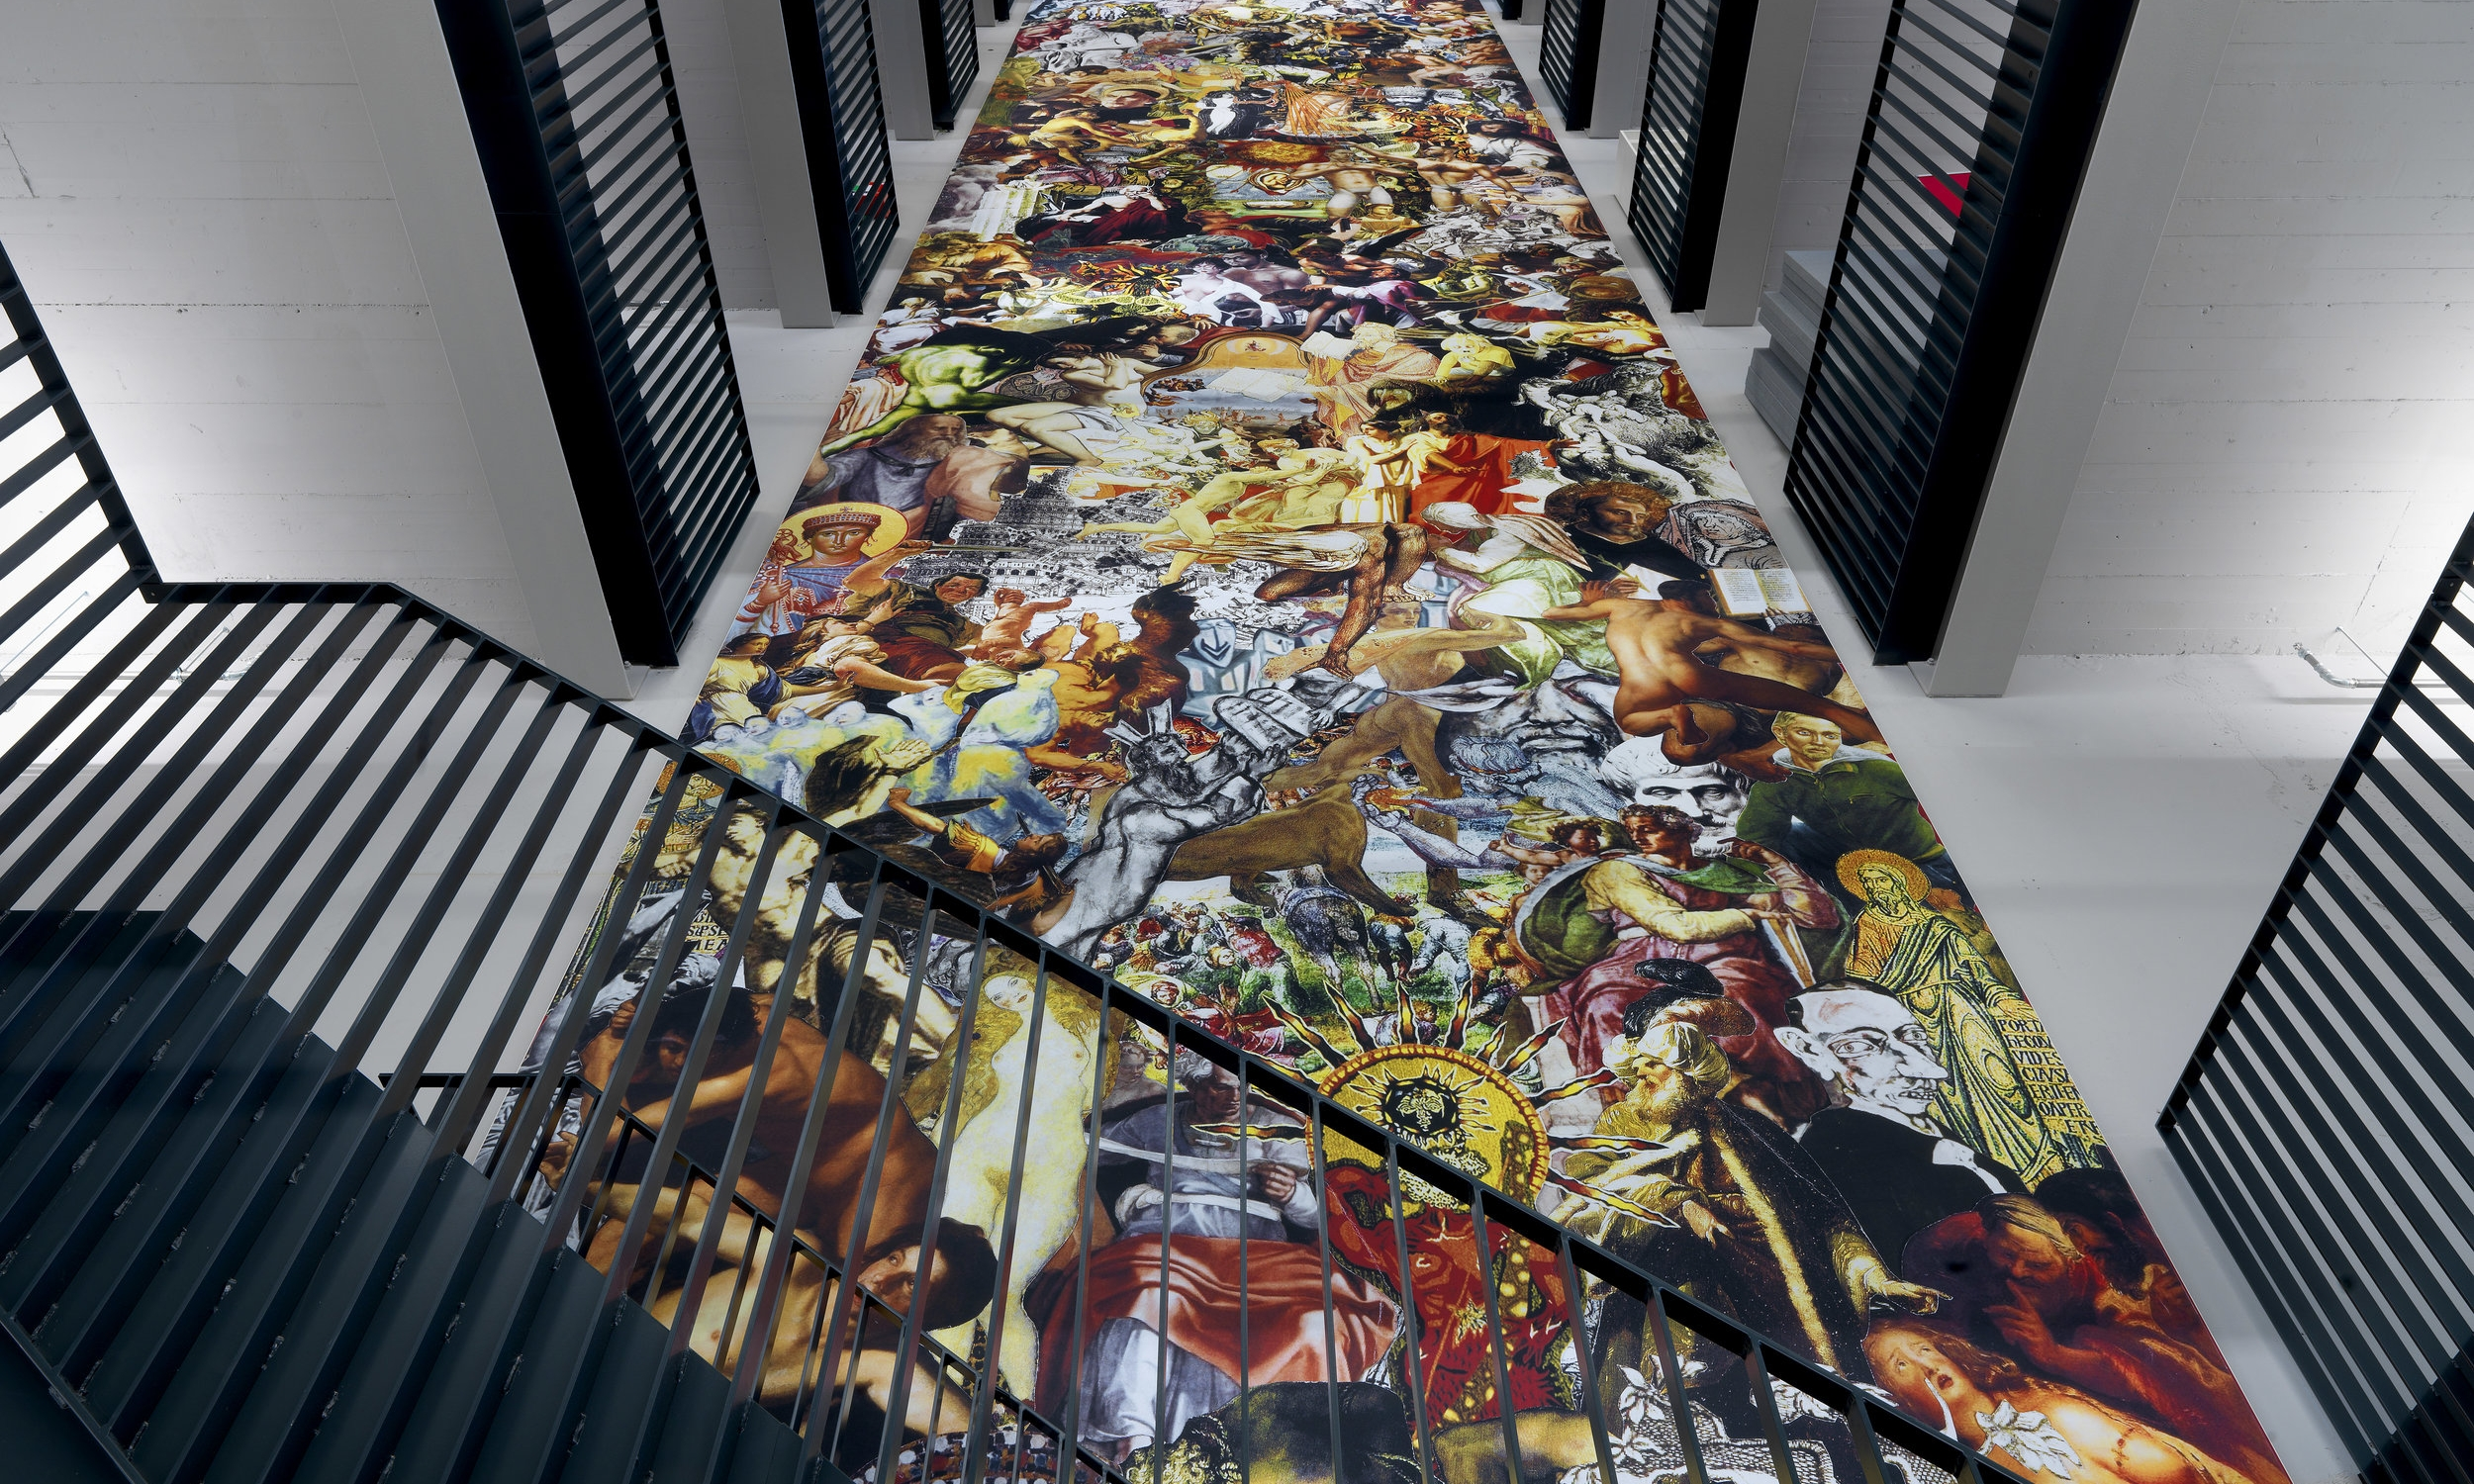 Amsterdam University, Justice and Injustice, printed canvas, 30 x 4,5 m